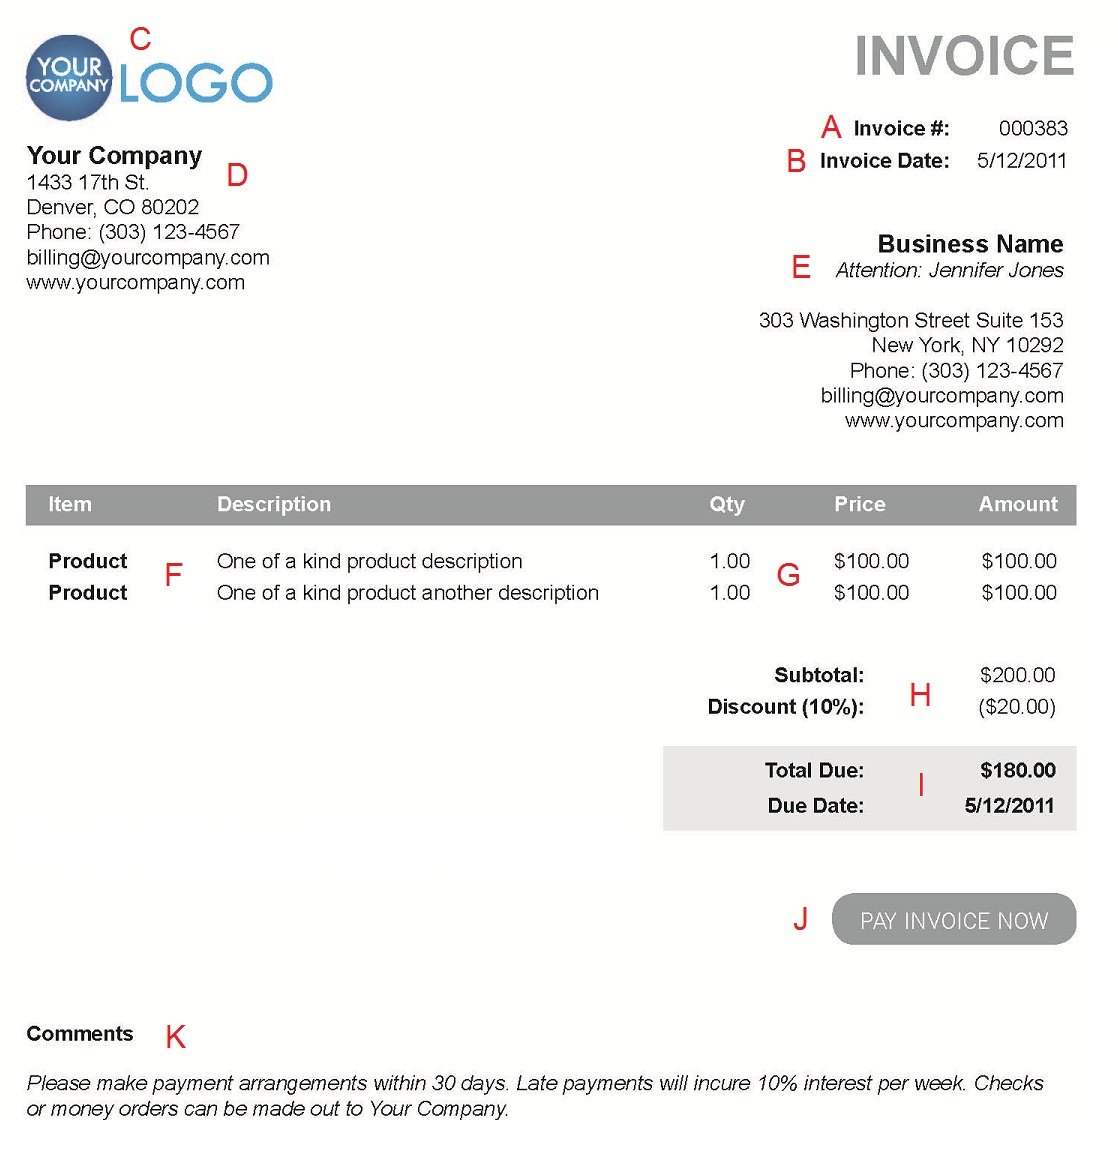 Soulfulpowerus  Picturesque The  Different Sections Of An Electronic Payment Invoice With Luxury A  With Agreeable Sample Invoice Template Excel Also Cxml Invoice In Addition It Invoice Template And What Is The Invoice Price Of A New Car As Well As Dealers Invoice Additionally Free Excel Invoice Templates From Paysimplecom With Soulfulpowerus  Luxury The  Different Sections Of An Electronic Payment Invoice With Agreeable A  And Picturesque Sample Invoice Template Excel Also Cxml Invoice In Addition It Invoice Template From Paysimplecom